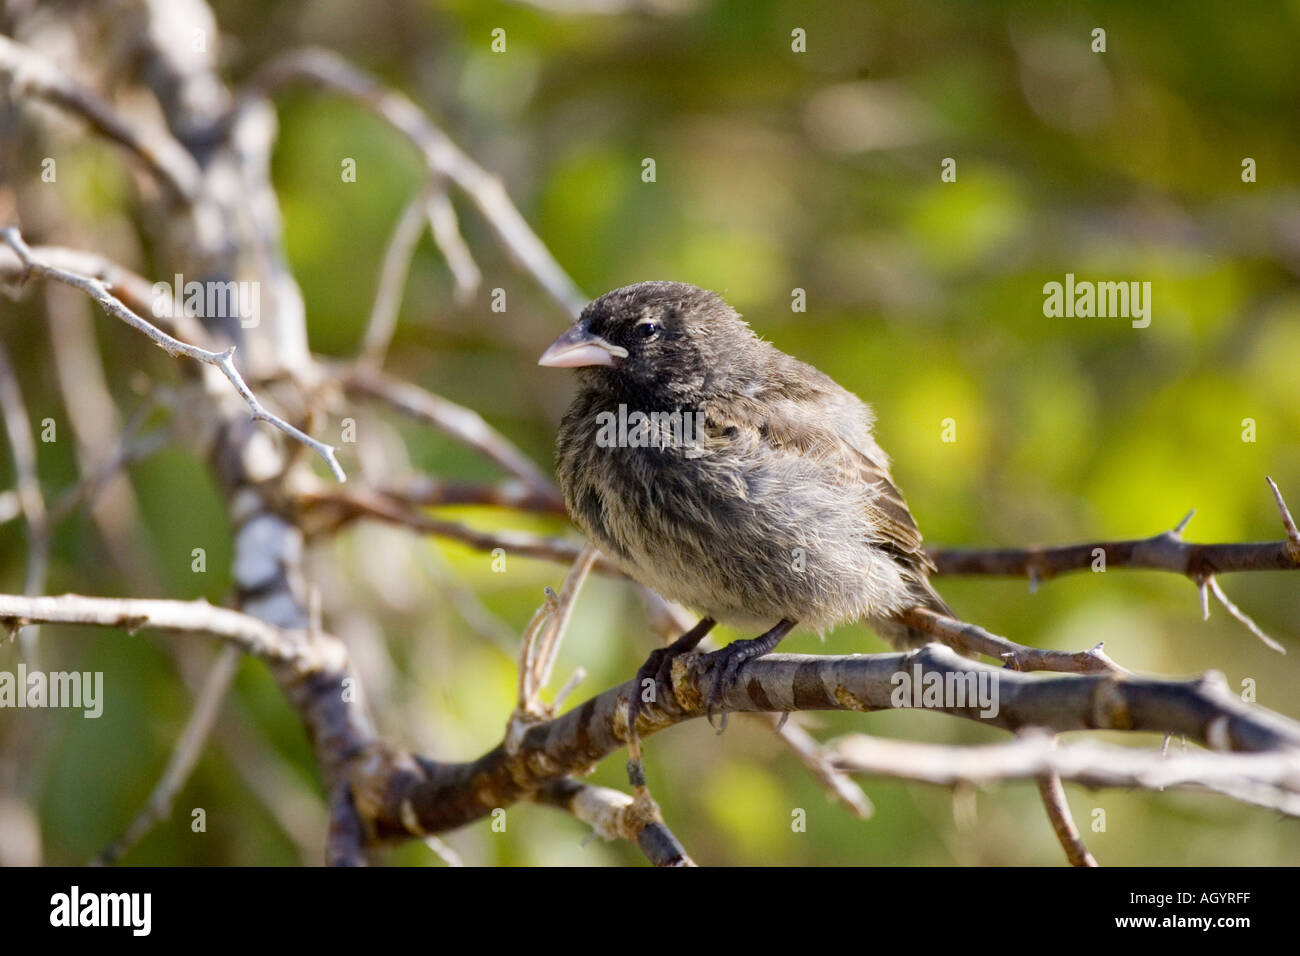 medium Ground Finch Geospiza fortis Darwin s finches Galapagos Islands - Stock Image